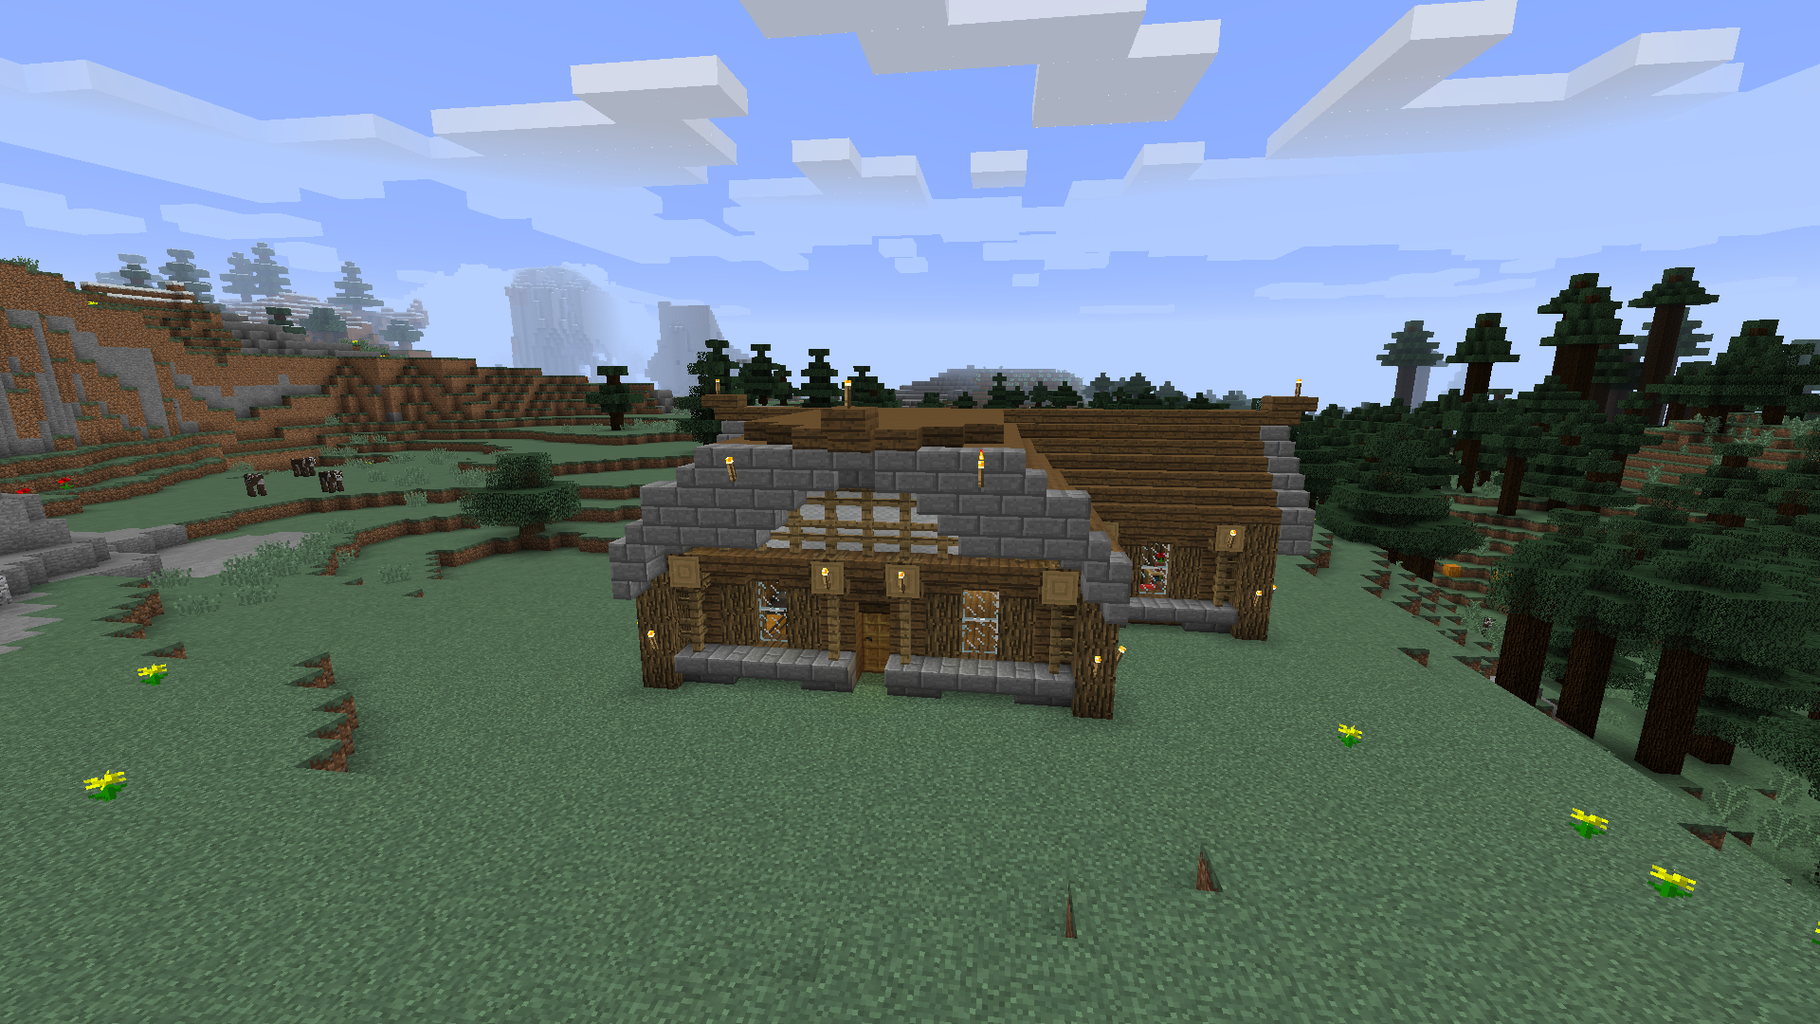 How to Make a House in Minecraft